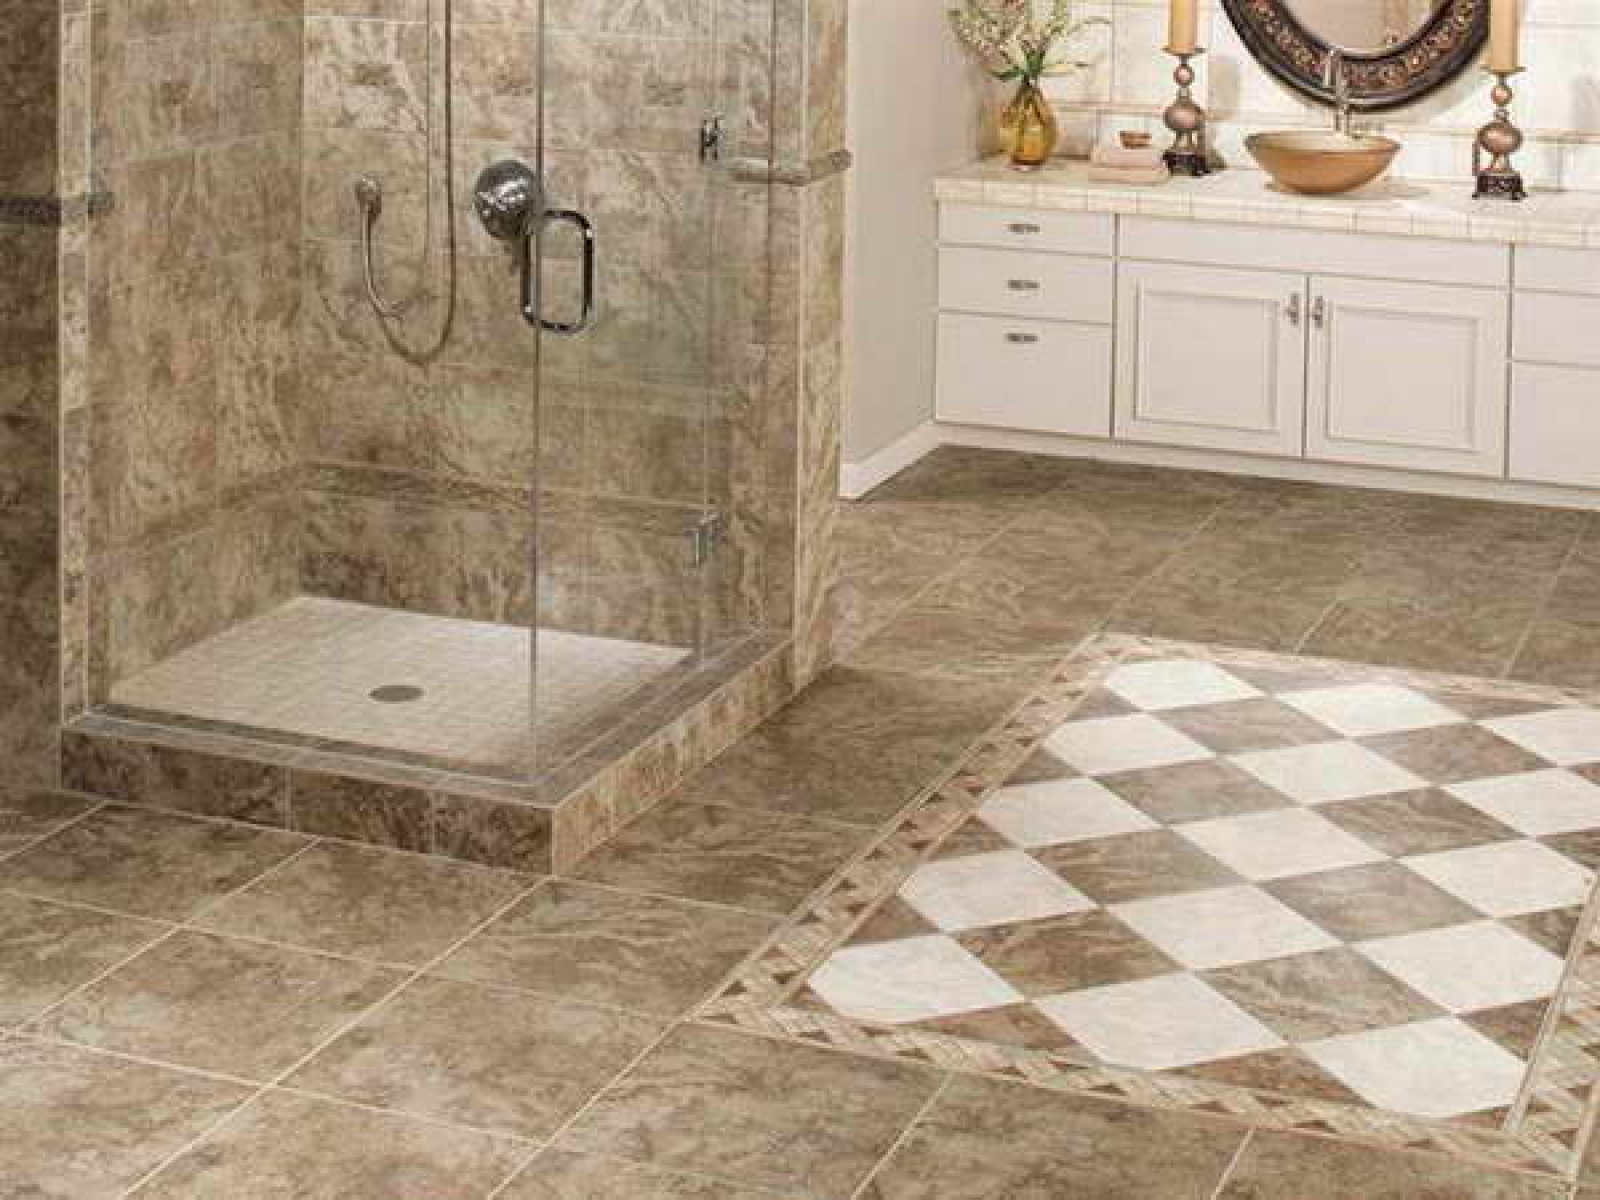 30 beautiful ideas and pictures decorative bathroom tile for Bathroom floor tile ideas